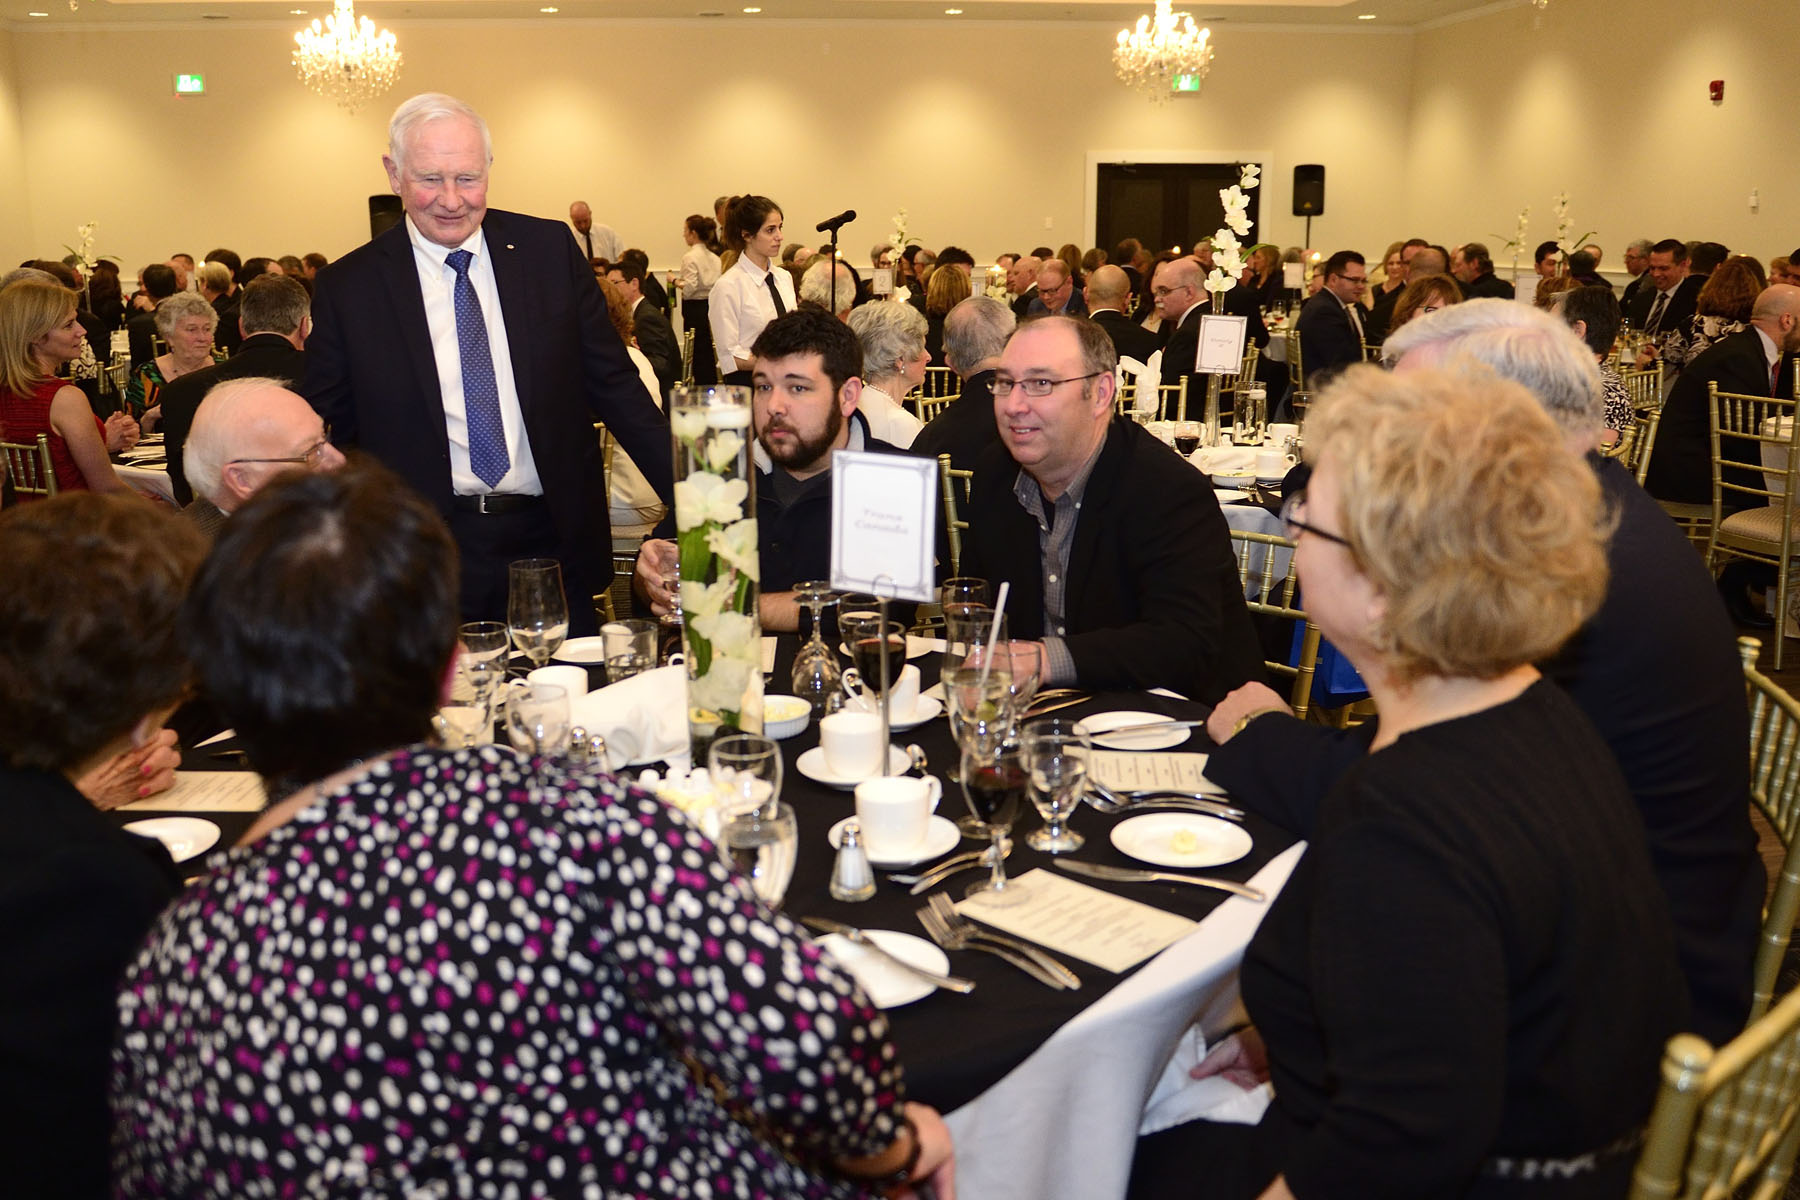 Their Excellencies attended a dinner hosted by the city of North Bay and local services clubs.